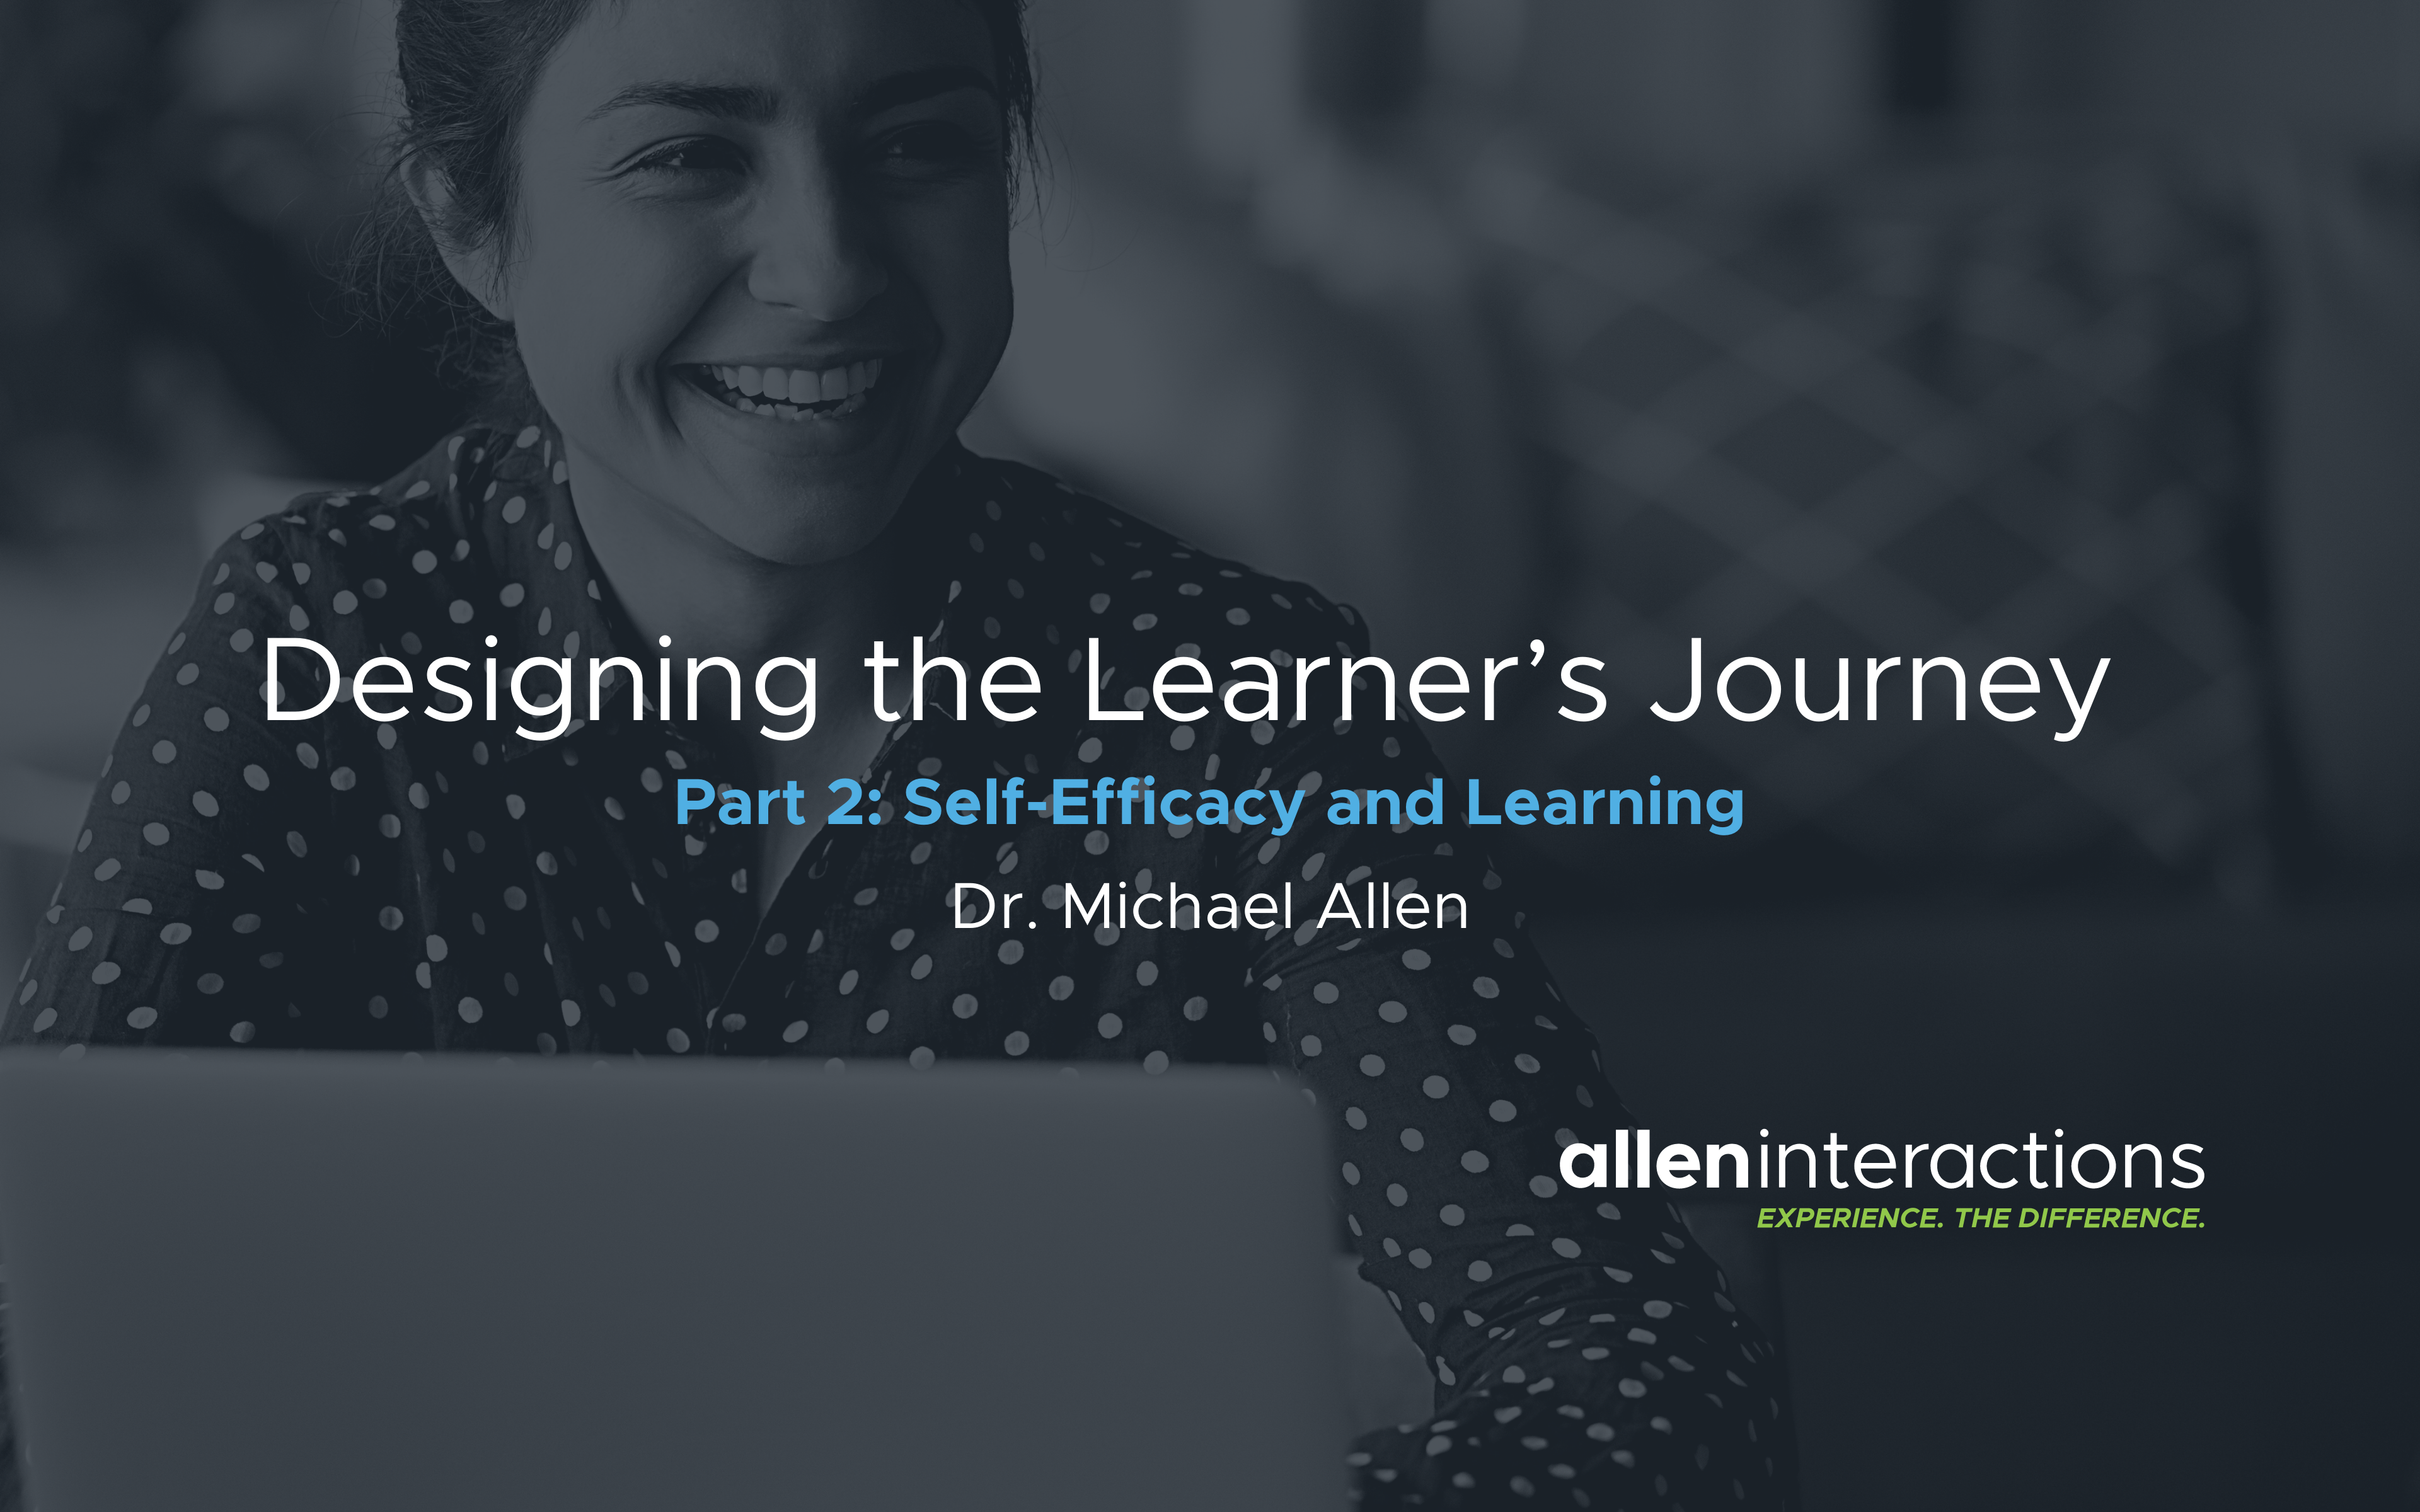 Instructional Design 3.0: Designing the Learner's Journey - Part 2